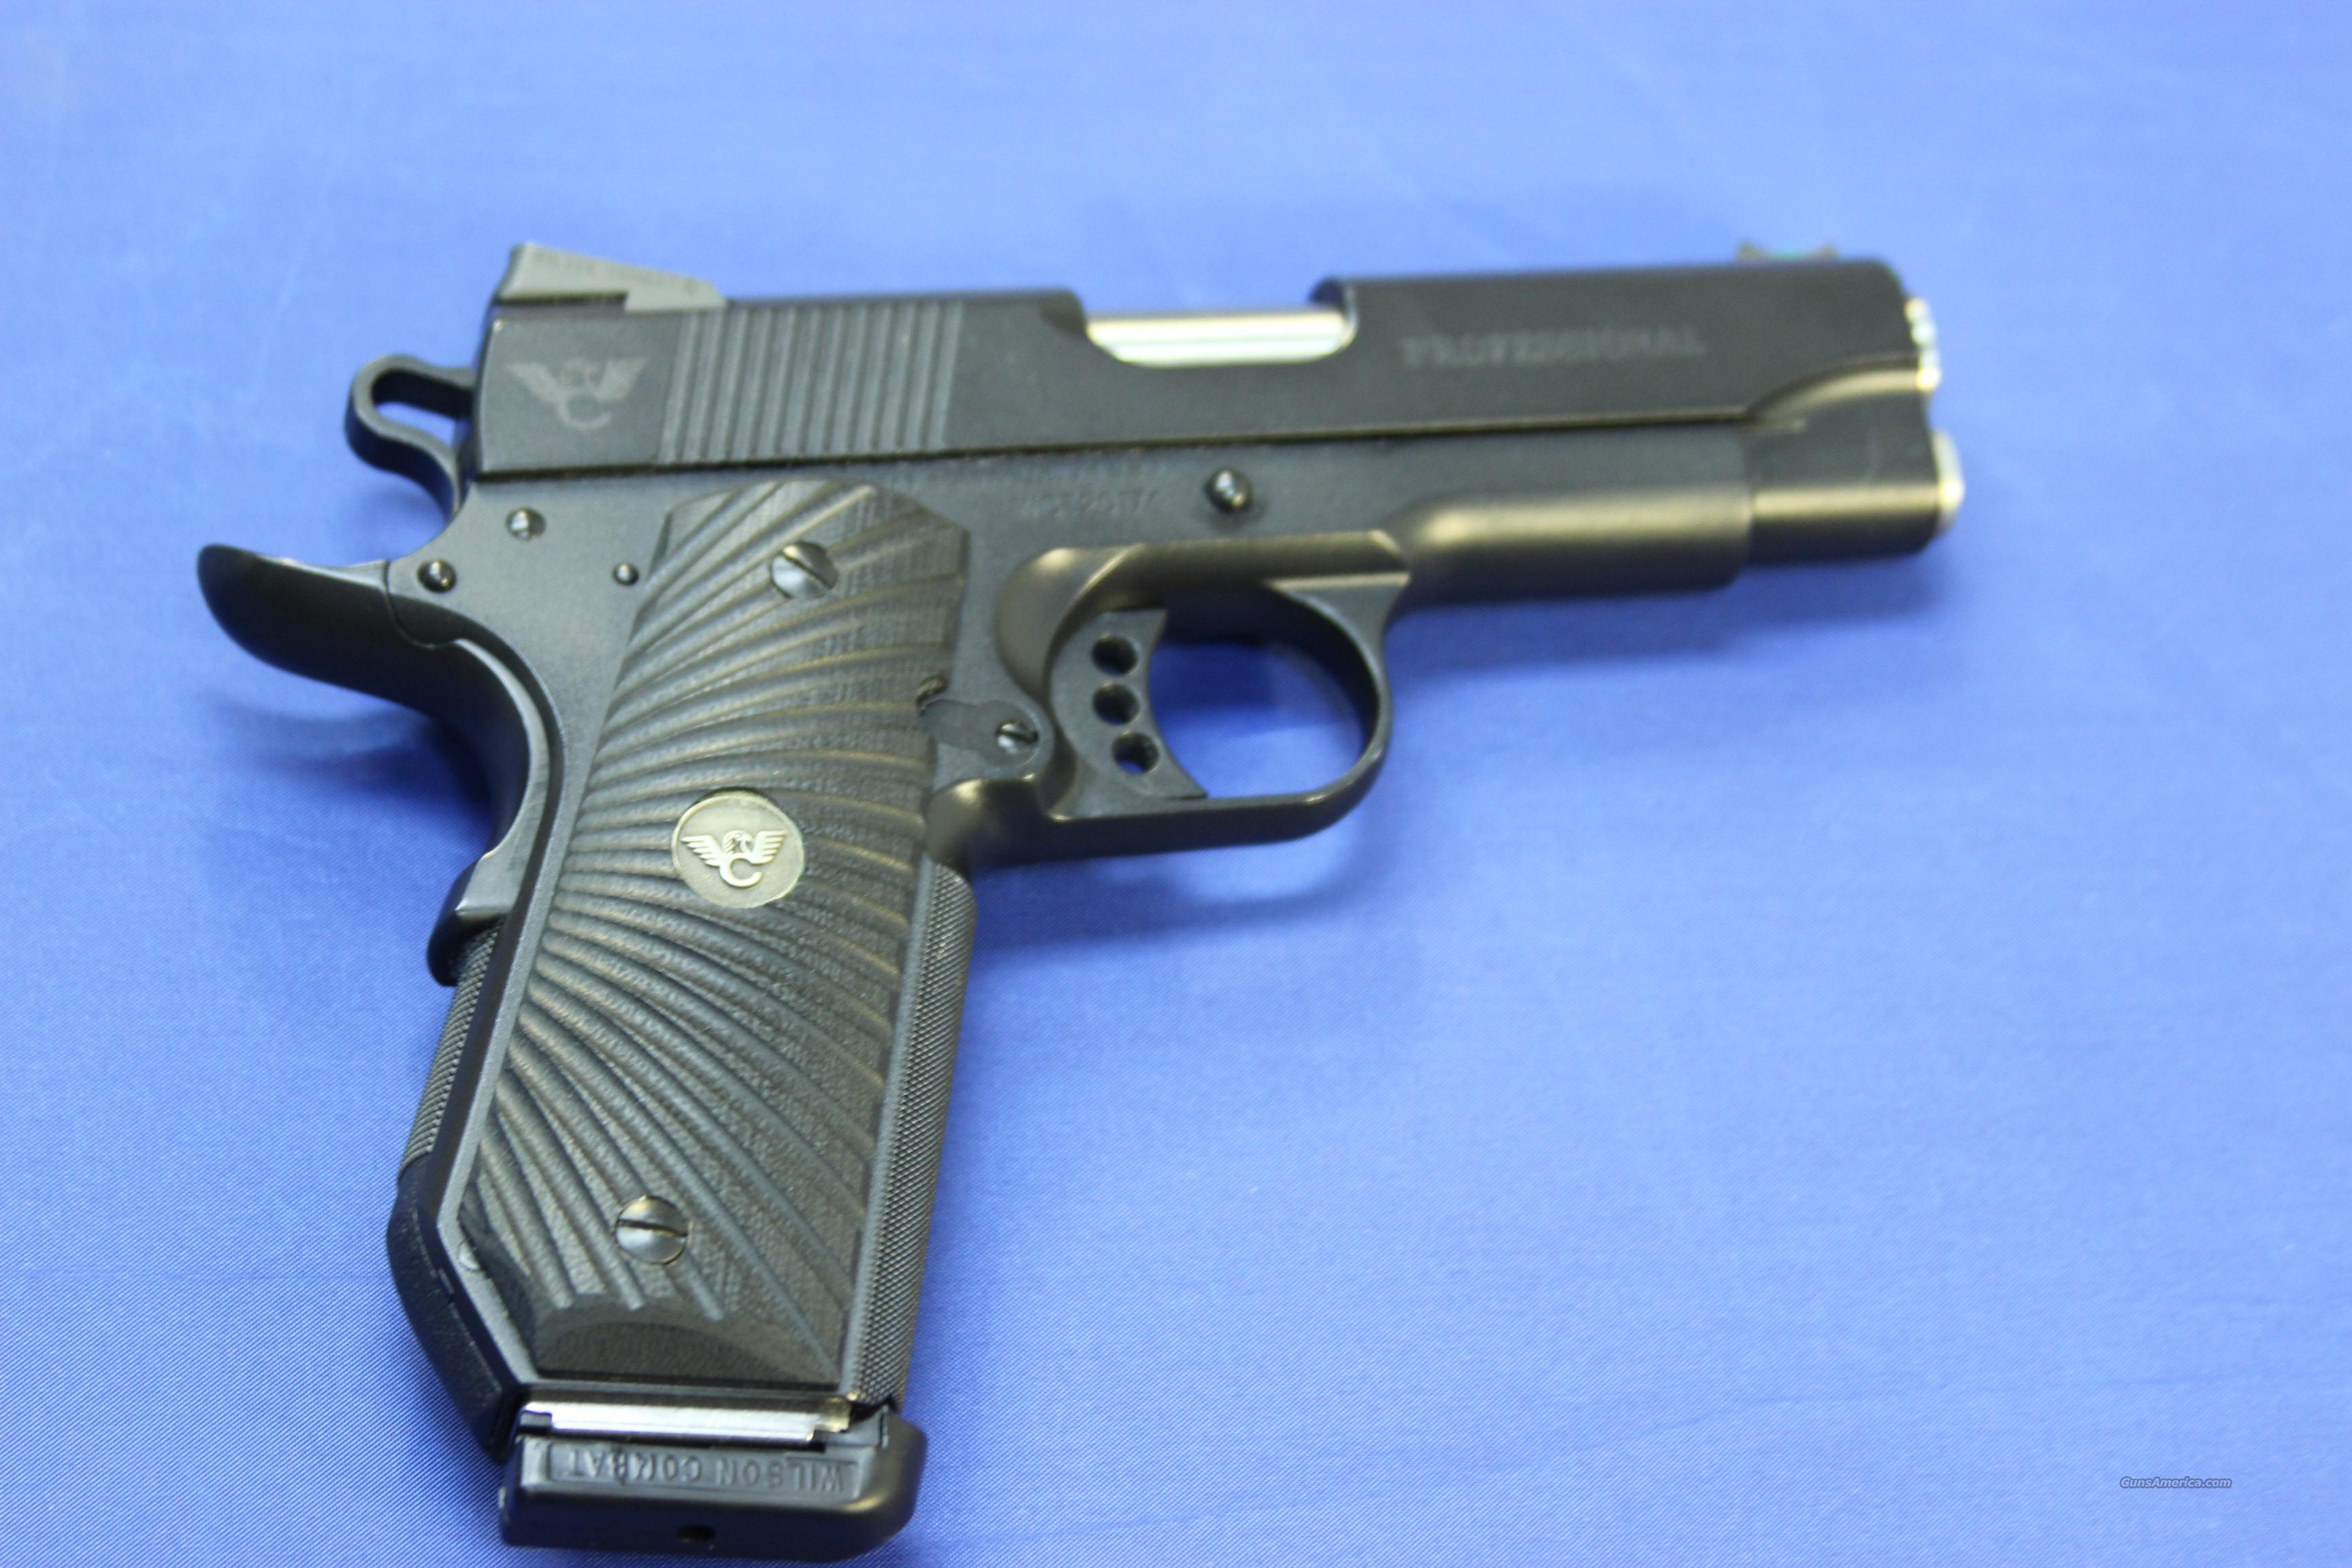 WILSON COMBAT 1911 PROFESSIONAL .45 ACP - w/ CASE AND FACTORY PAPERS  Guns > Pistols > Wilson Combat Pistols